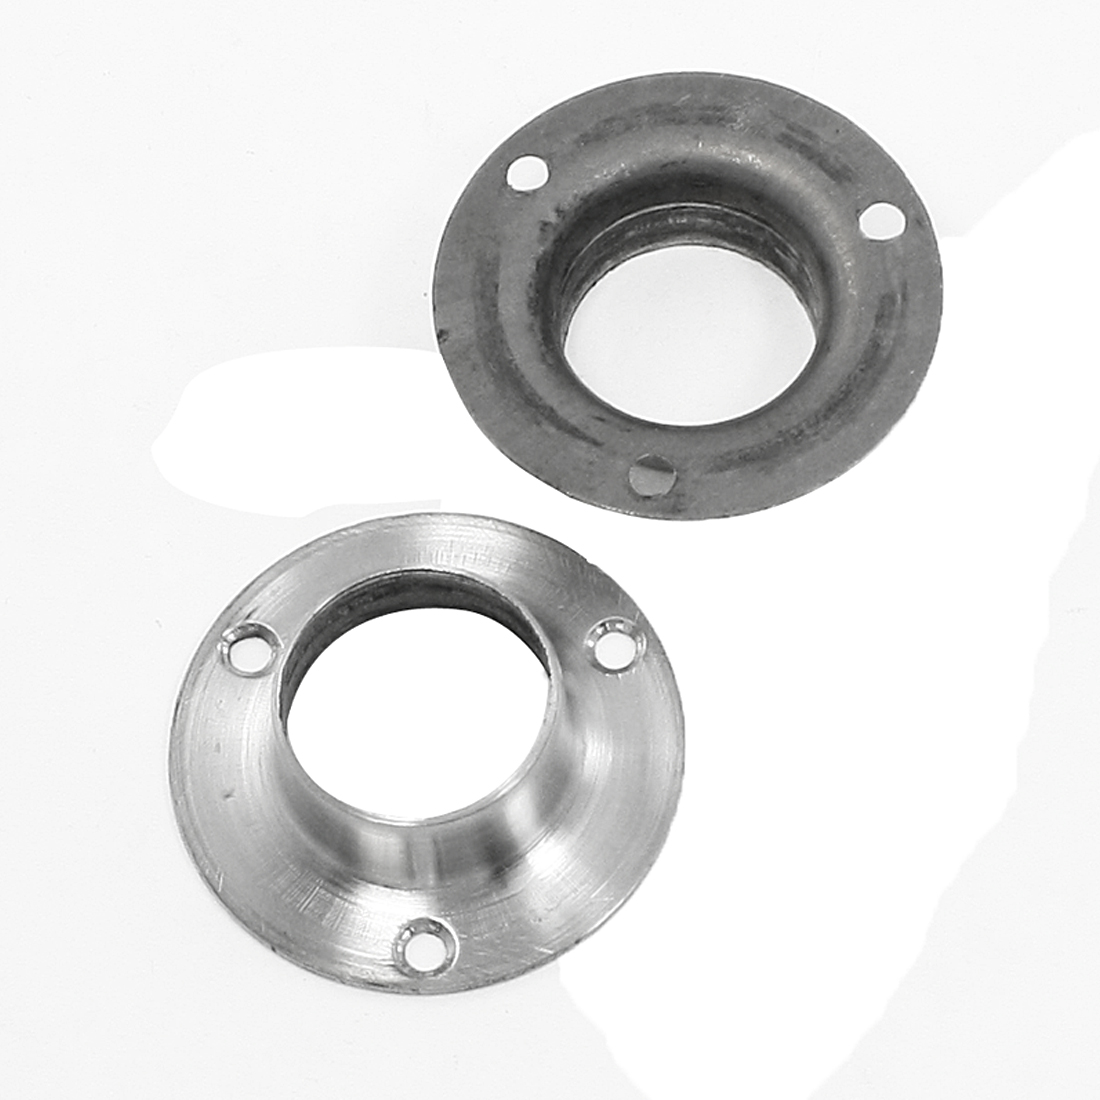 2 Pcs 50mm x 15mm Stainless Steel Weld Neck Flange for Machines Piping